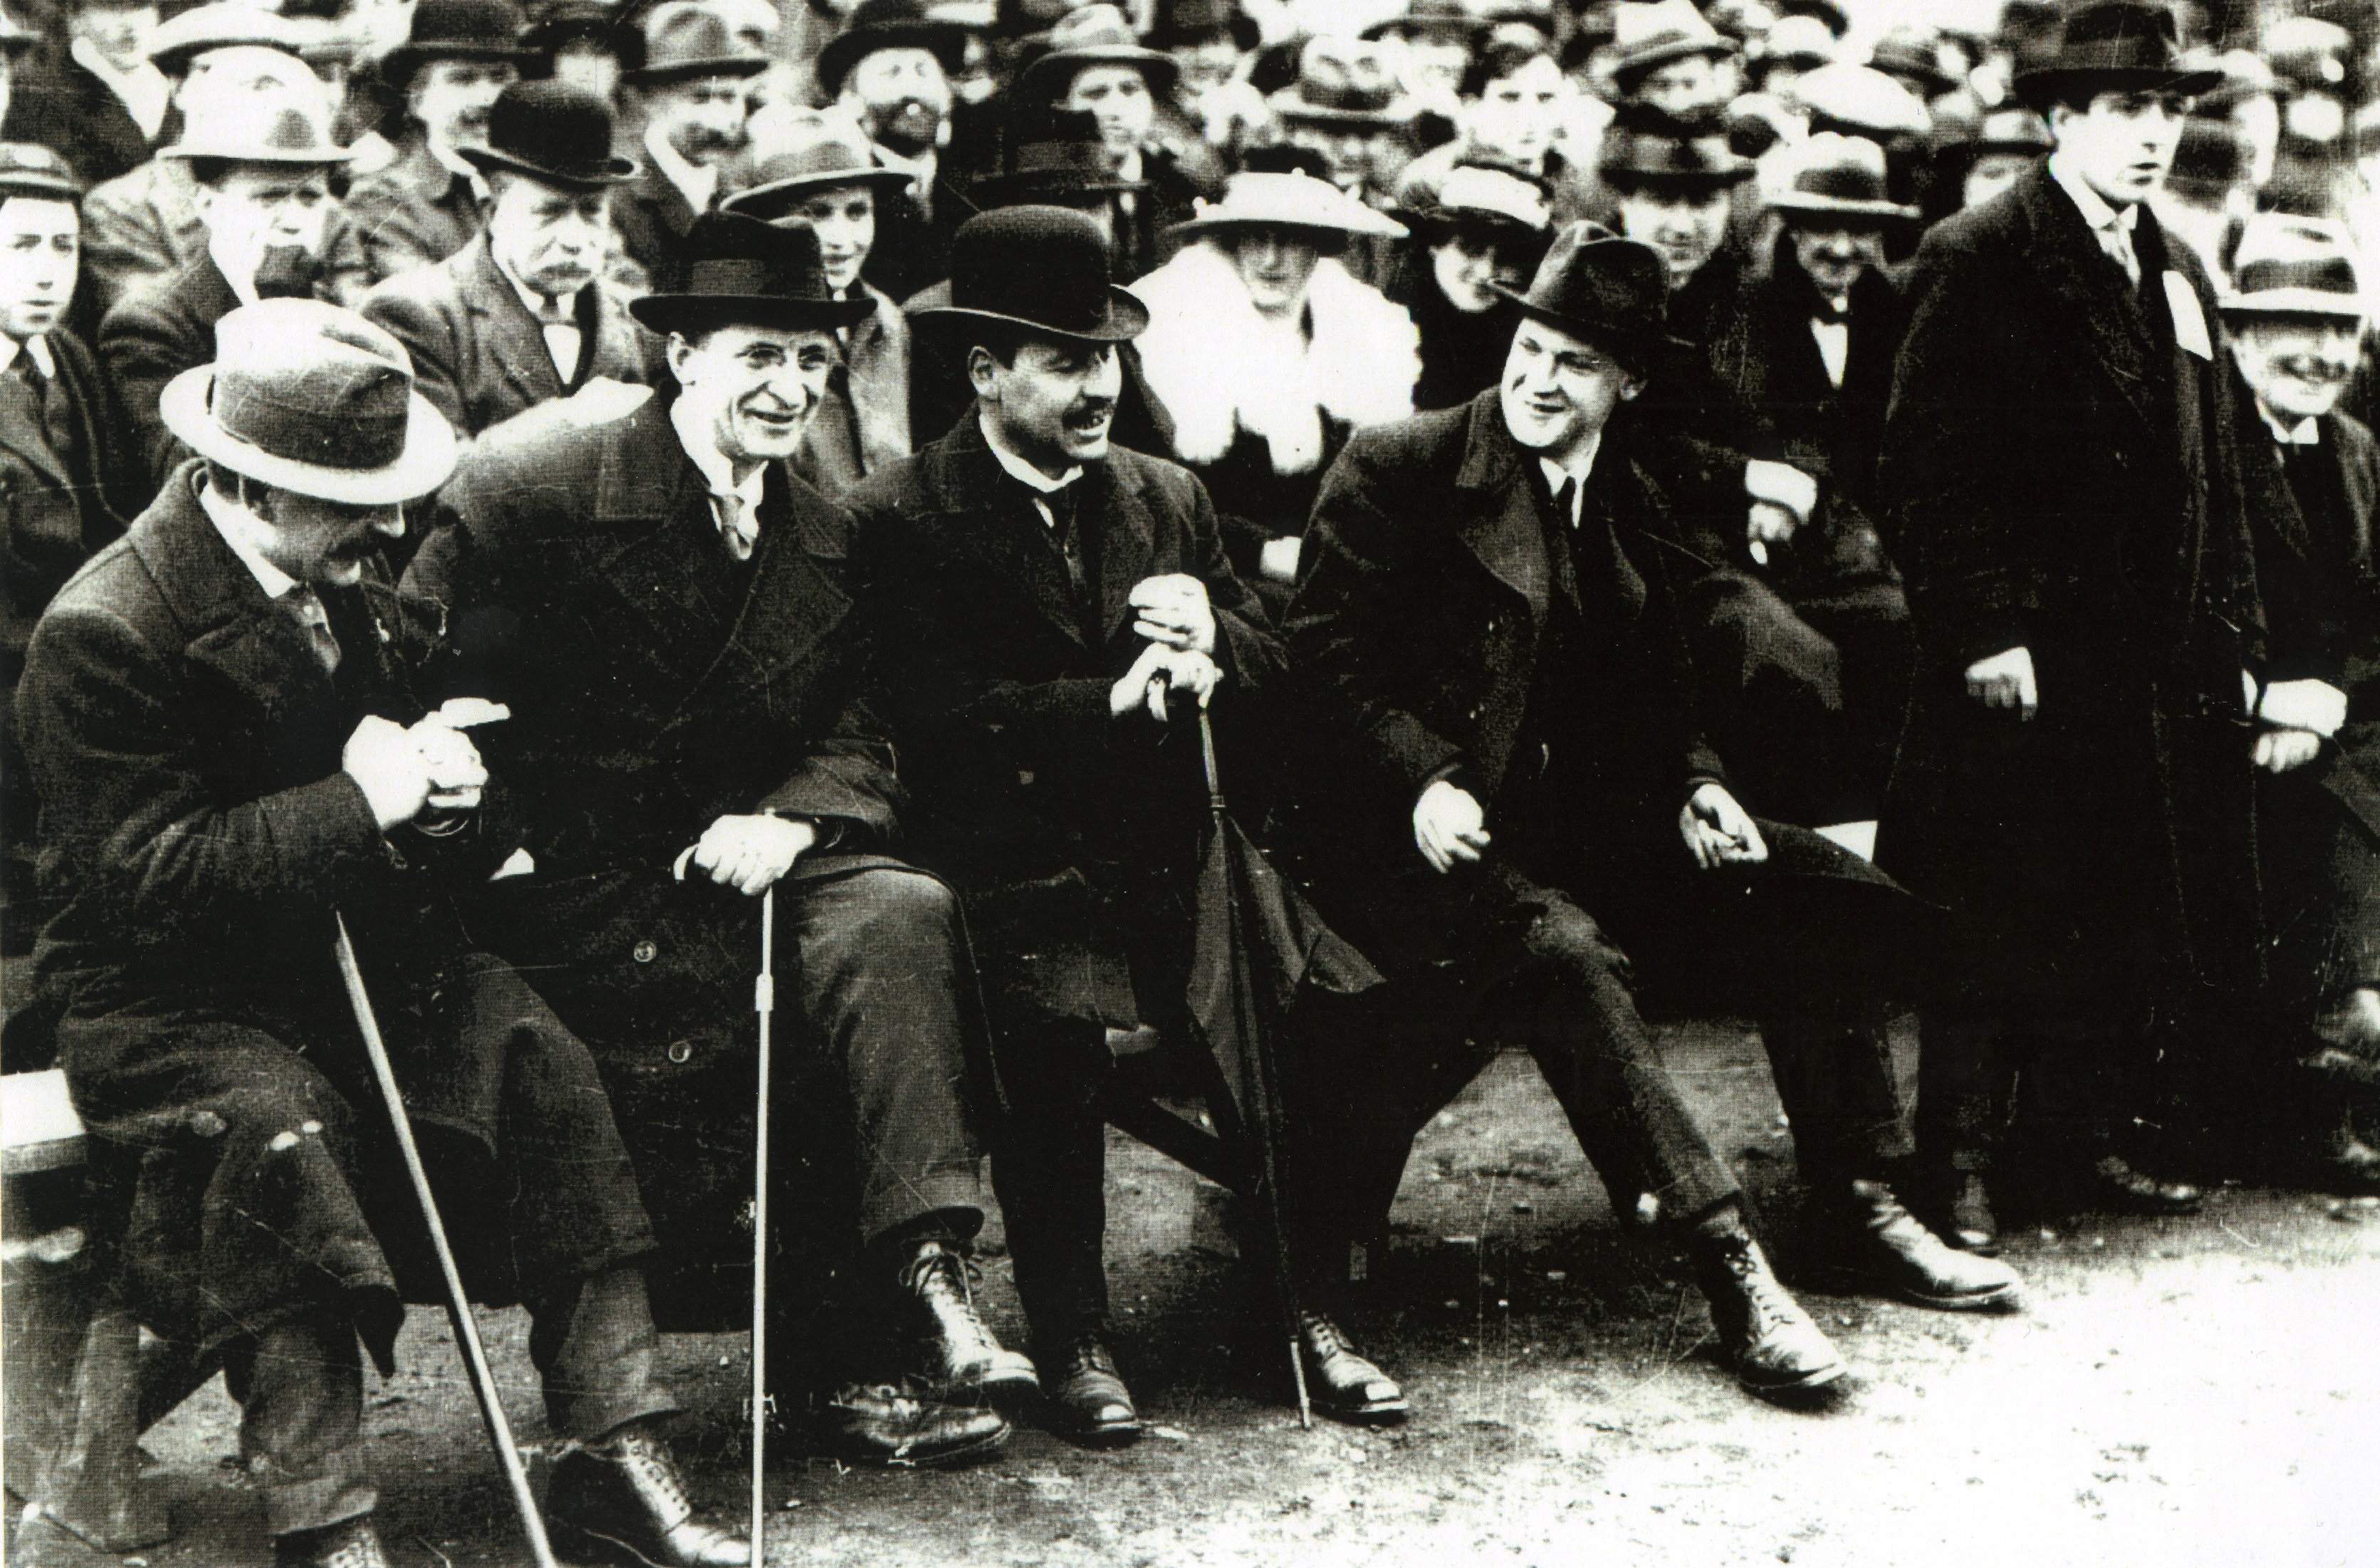 Republican Dignitaries at Croke Park, 1919